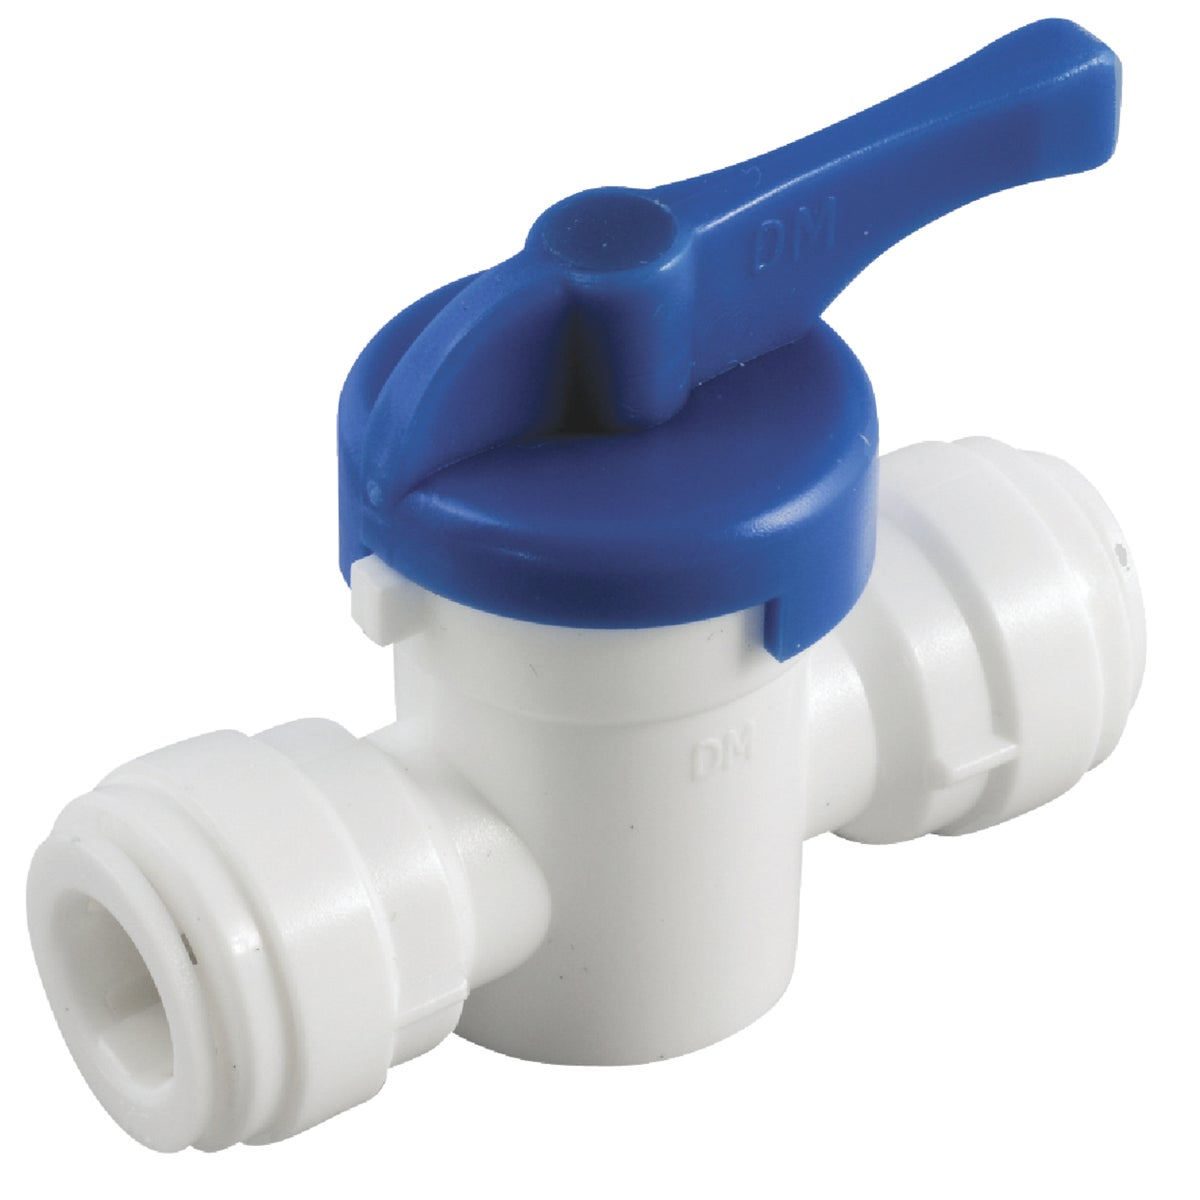 "3/8"" PUSH-IN BALL VALVE - 53906-06 by Anderson Metals Corp"